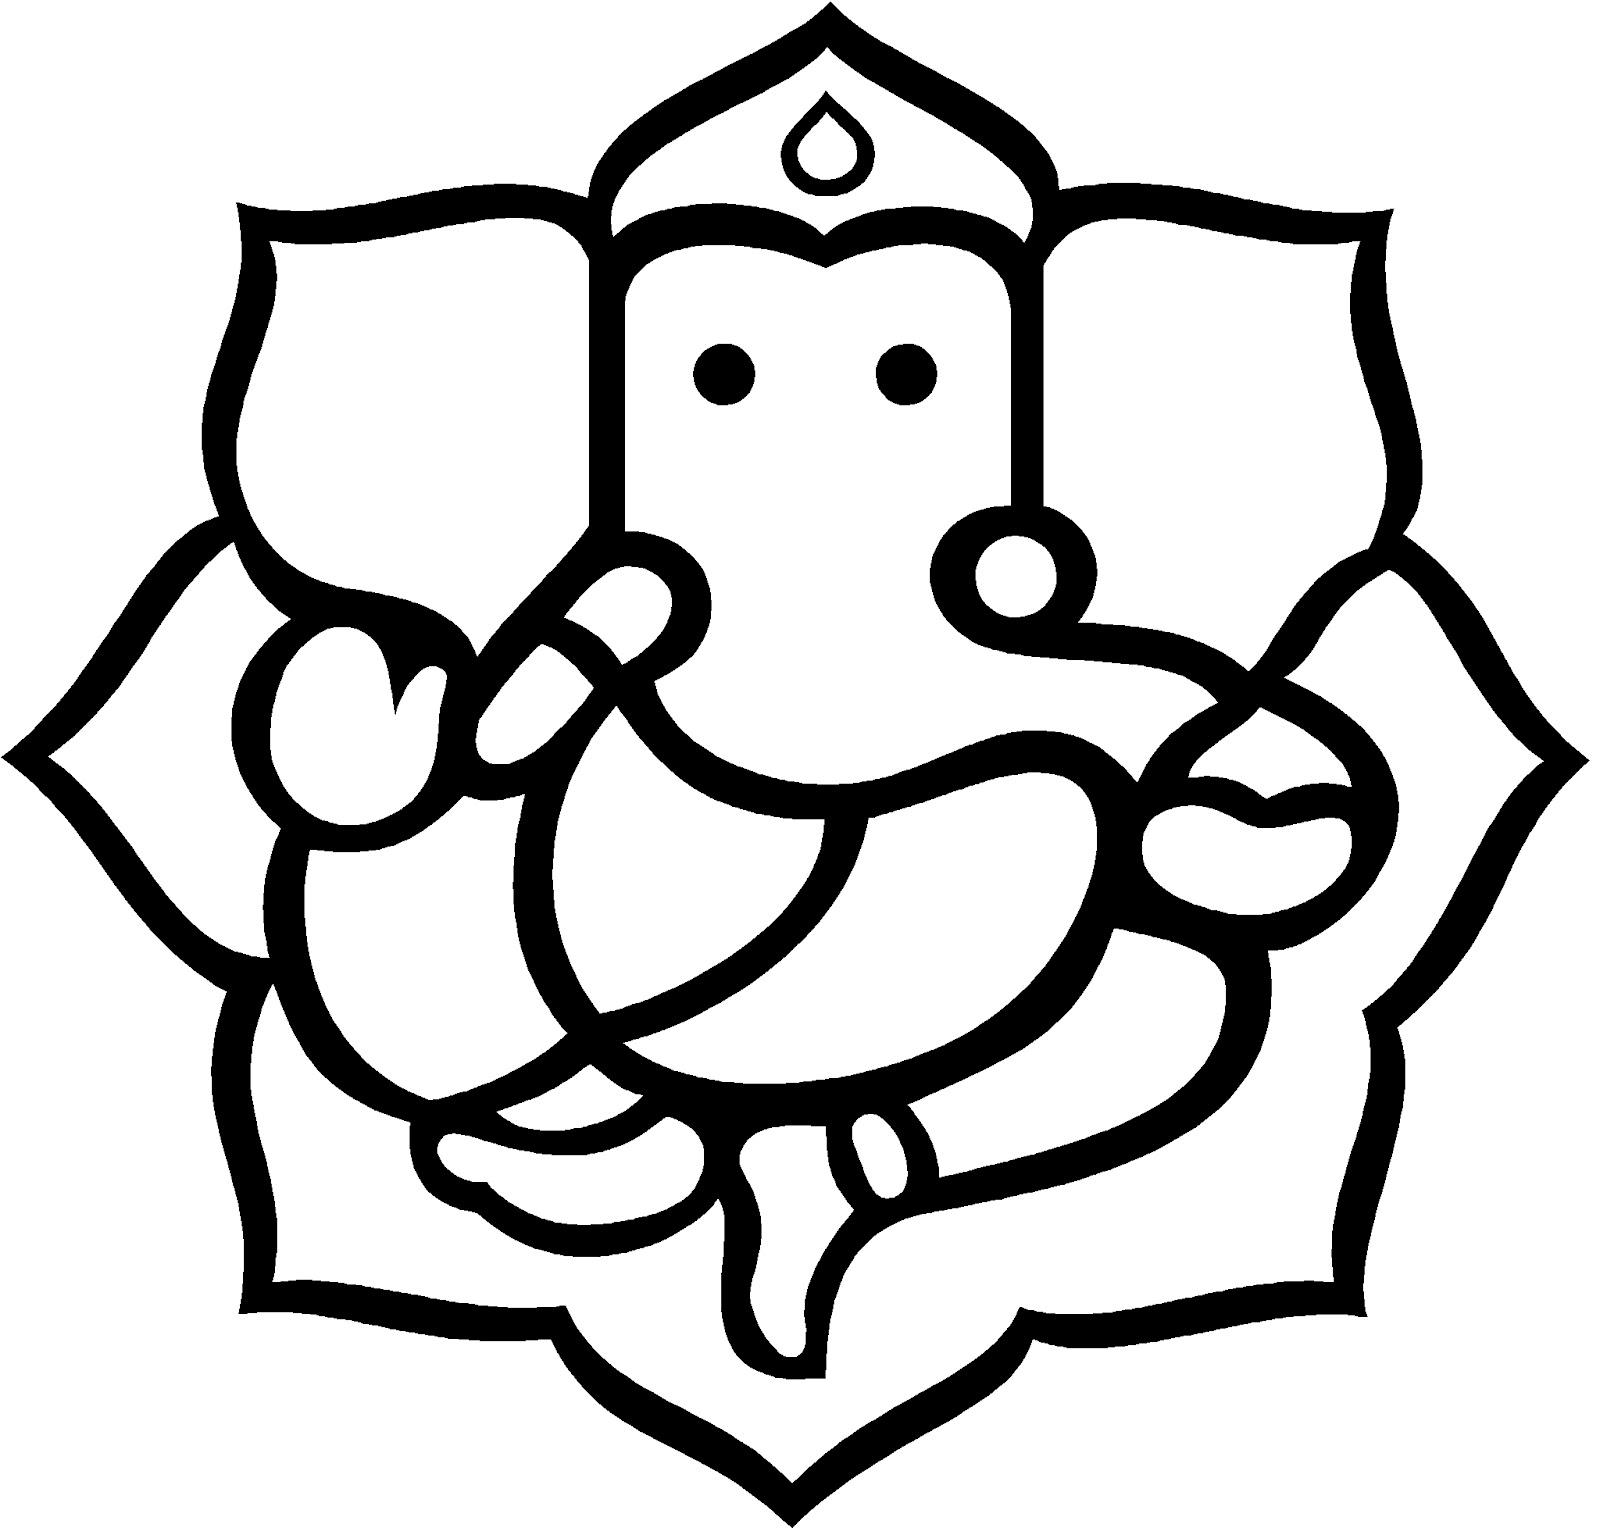 1600x1528 Simple Ganesh Sketch Lord Ganesha Drawings Simple Ganesh Vector